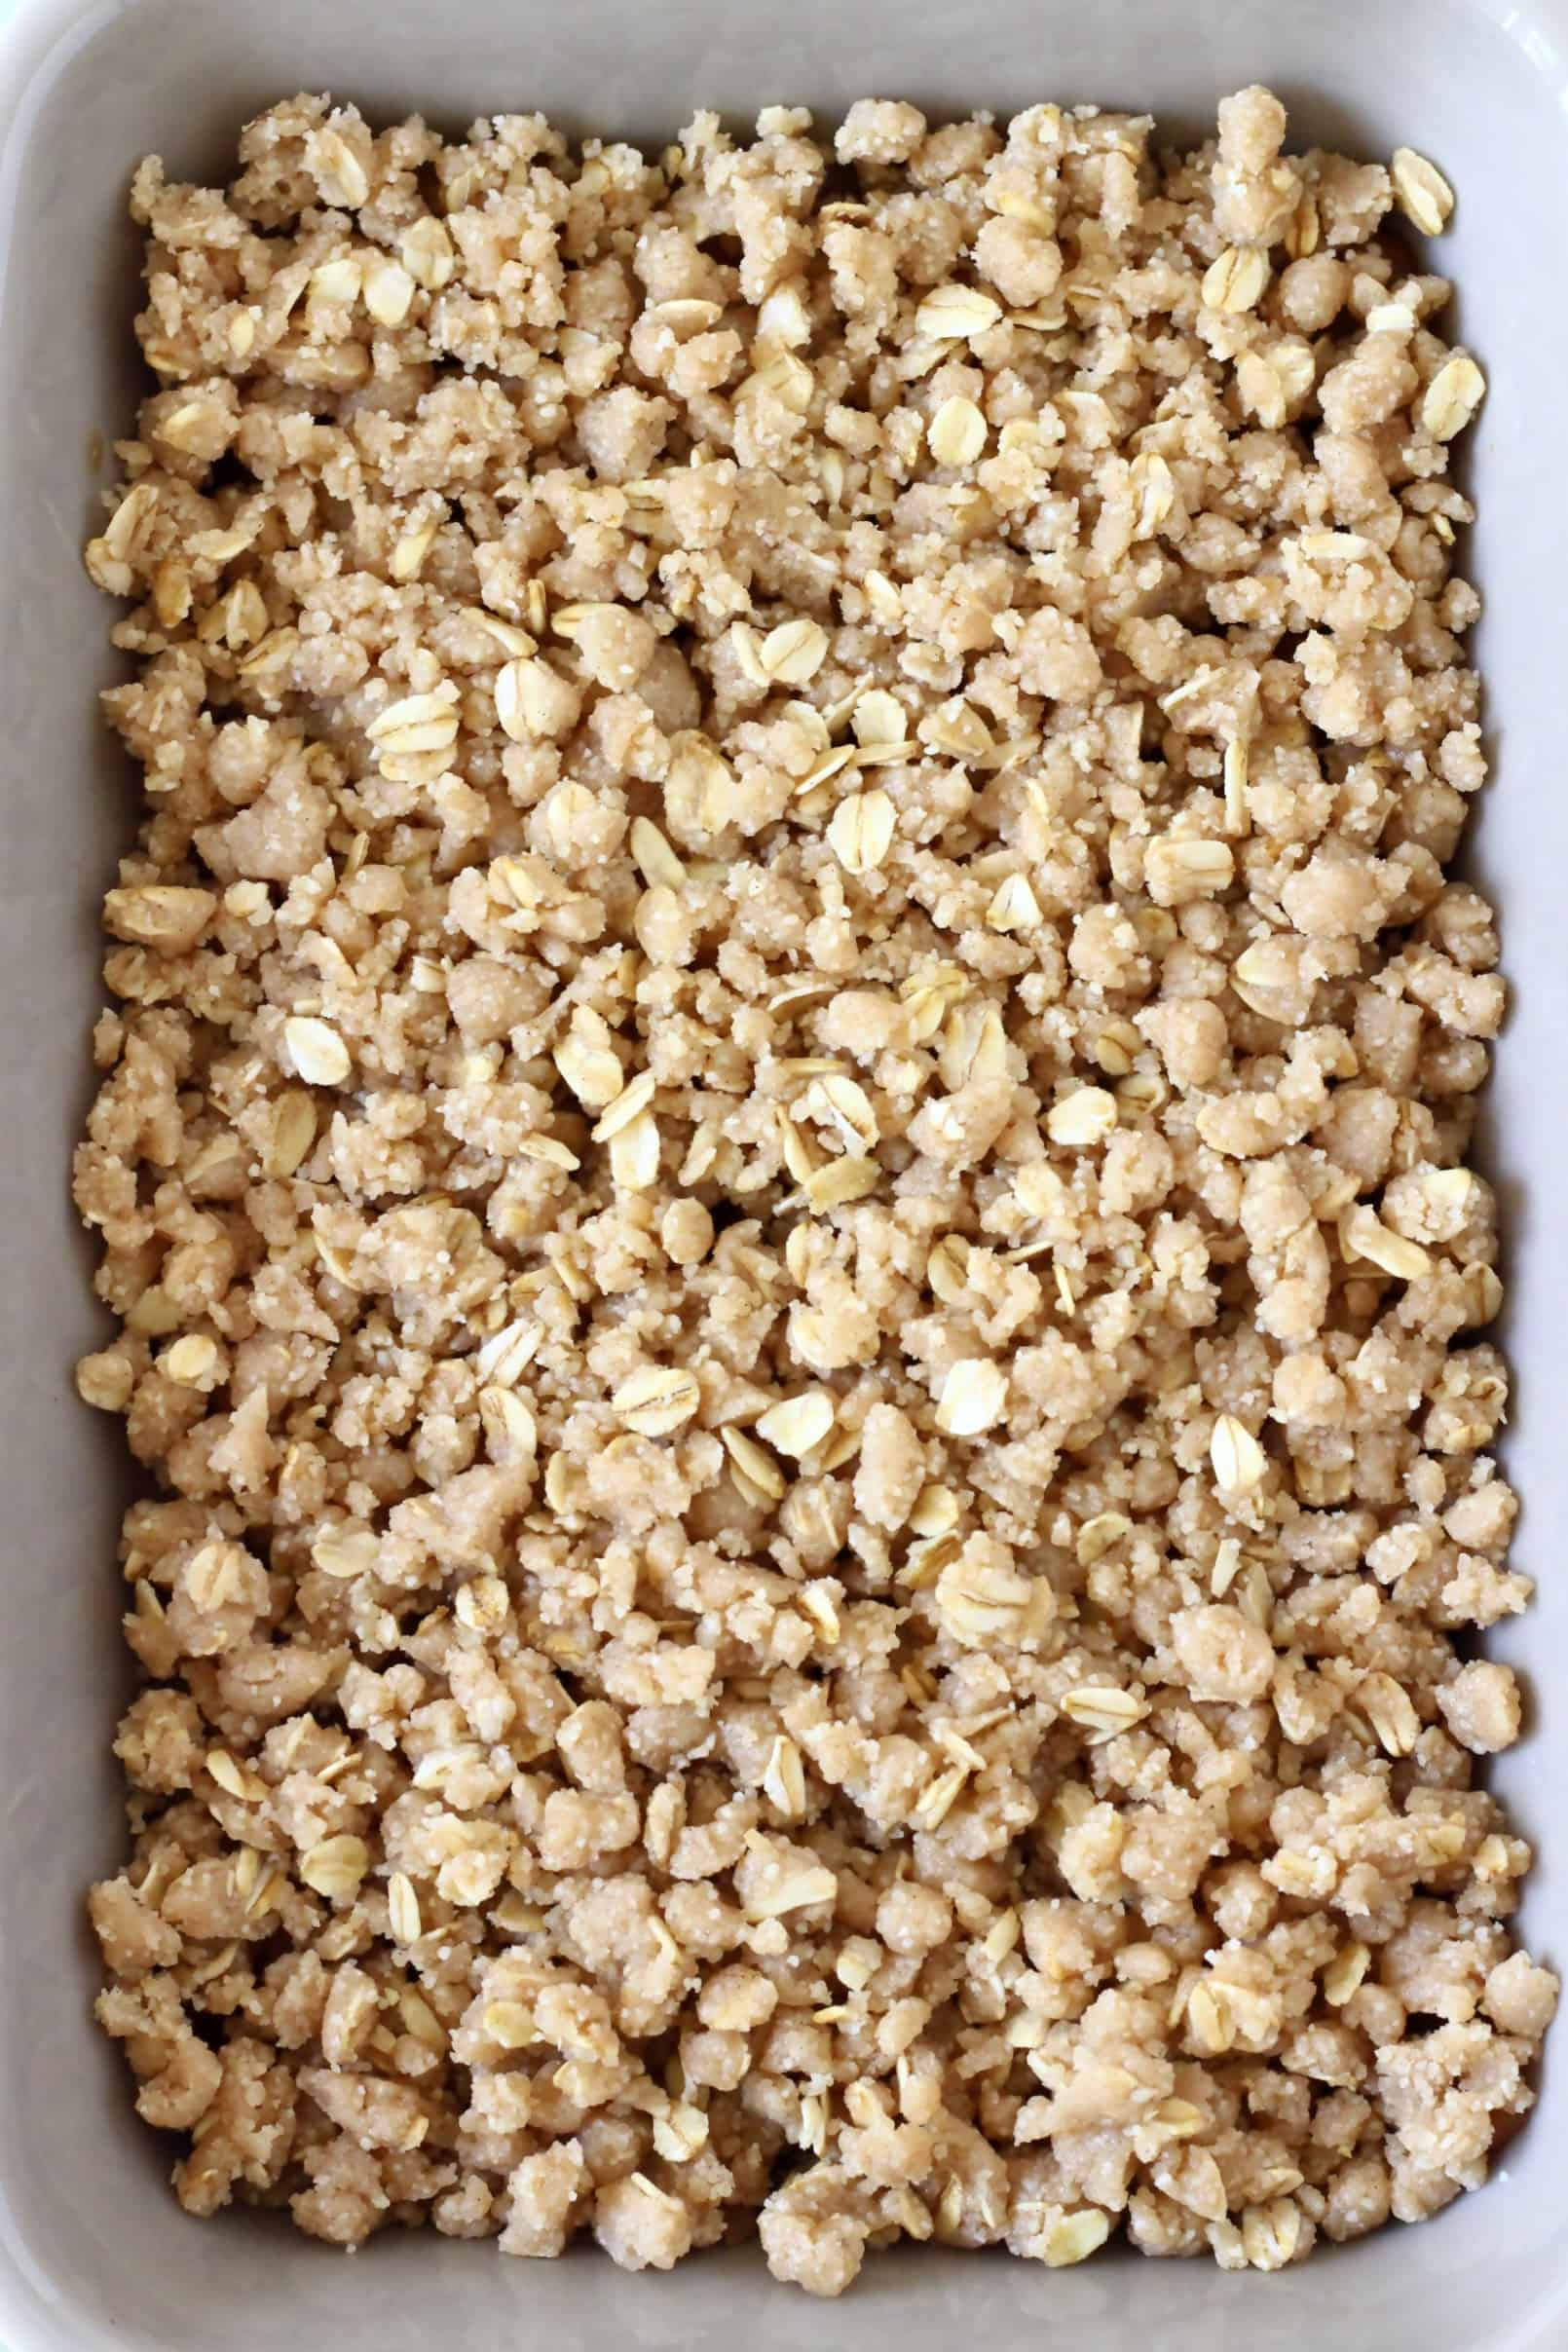 Raw gluten-free vegan crumble mixture with oats in a rectangular baking dish